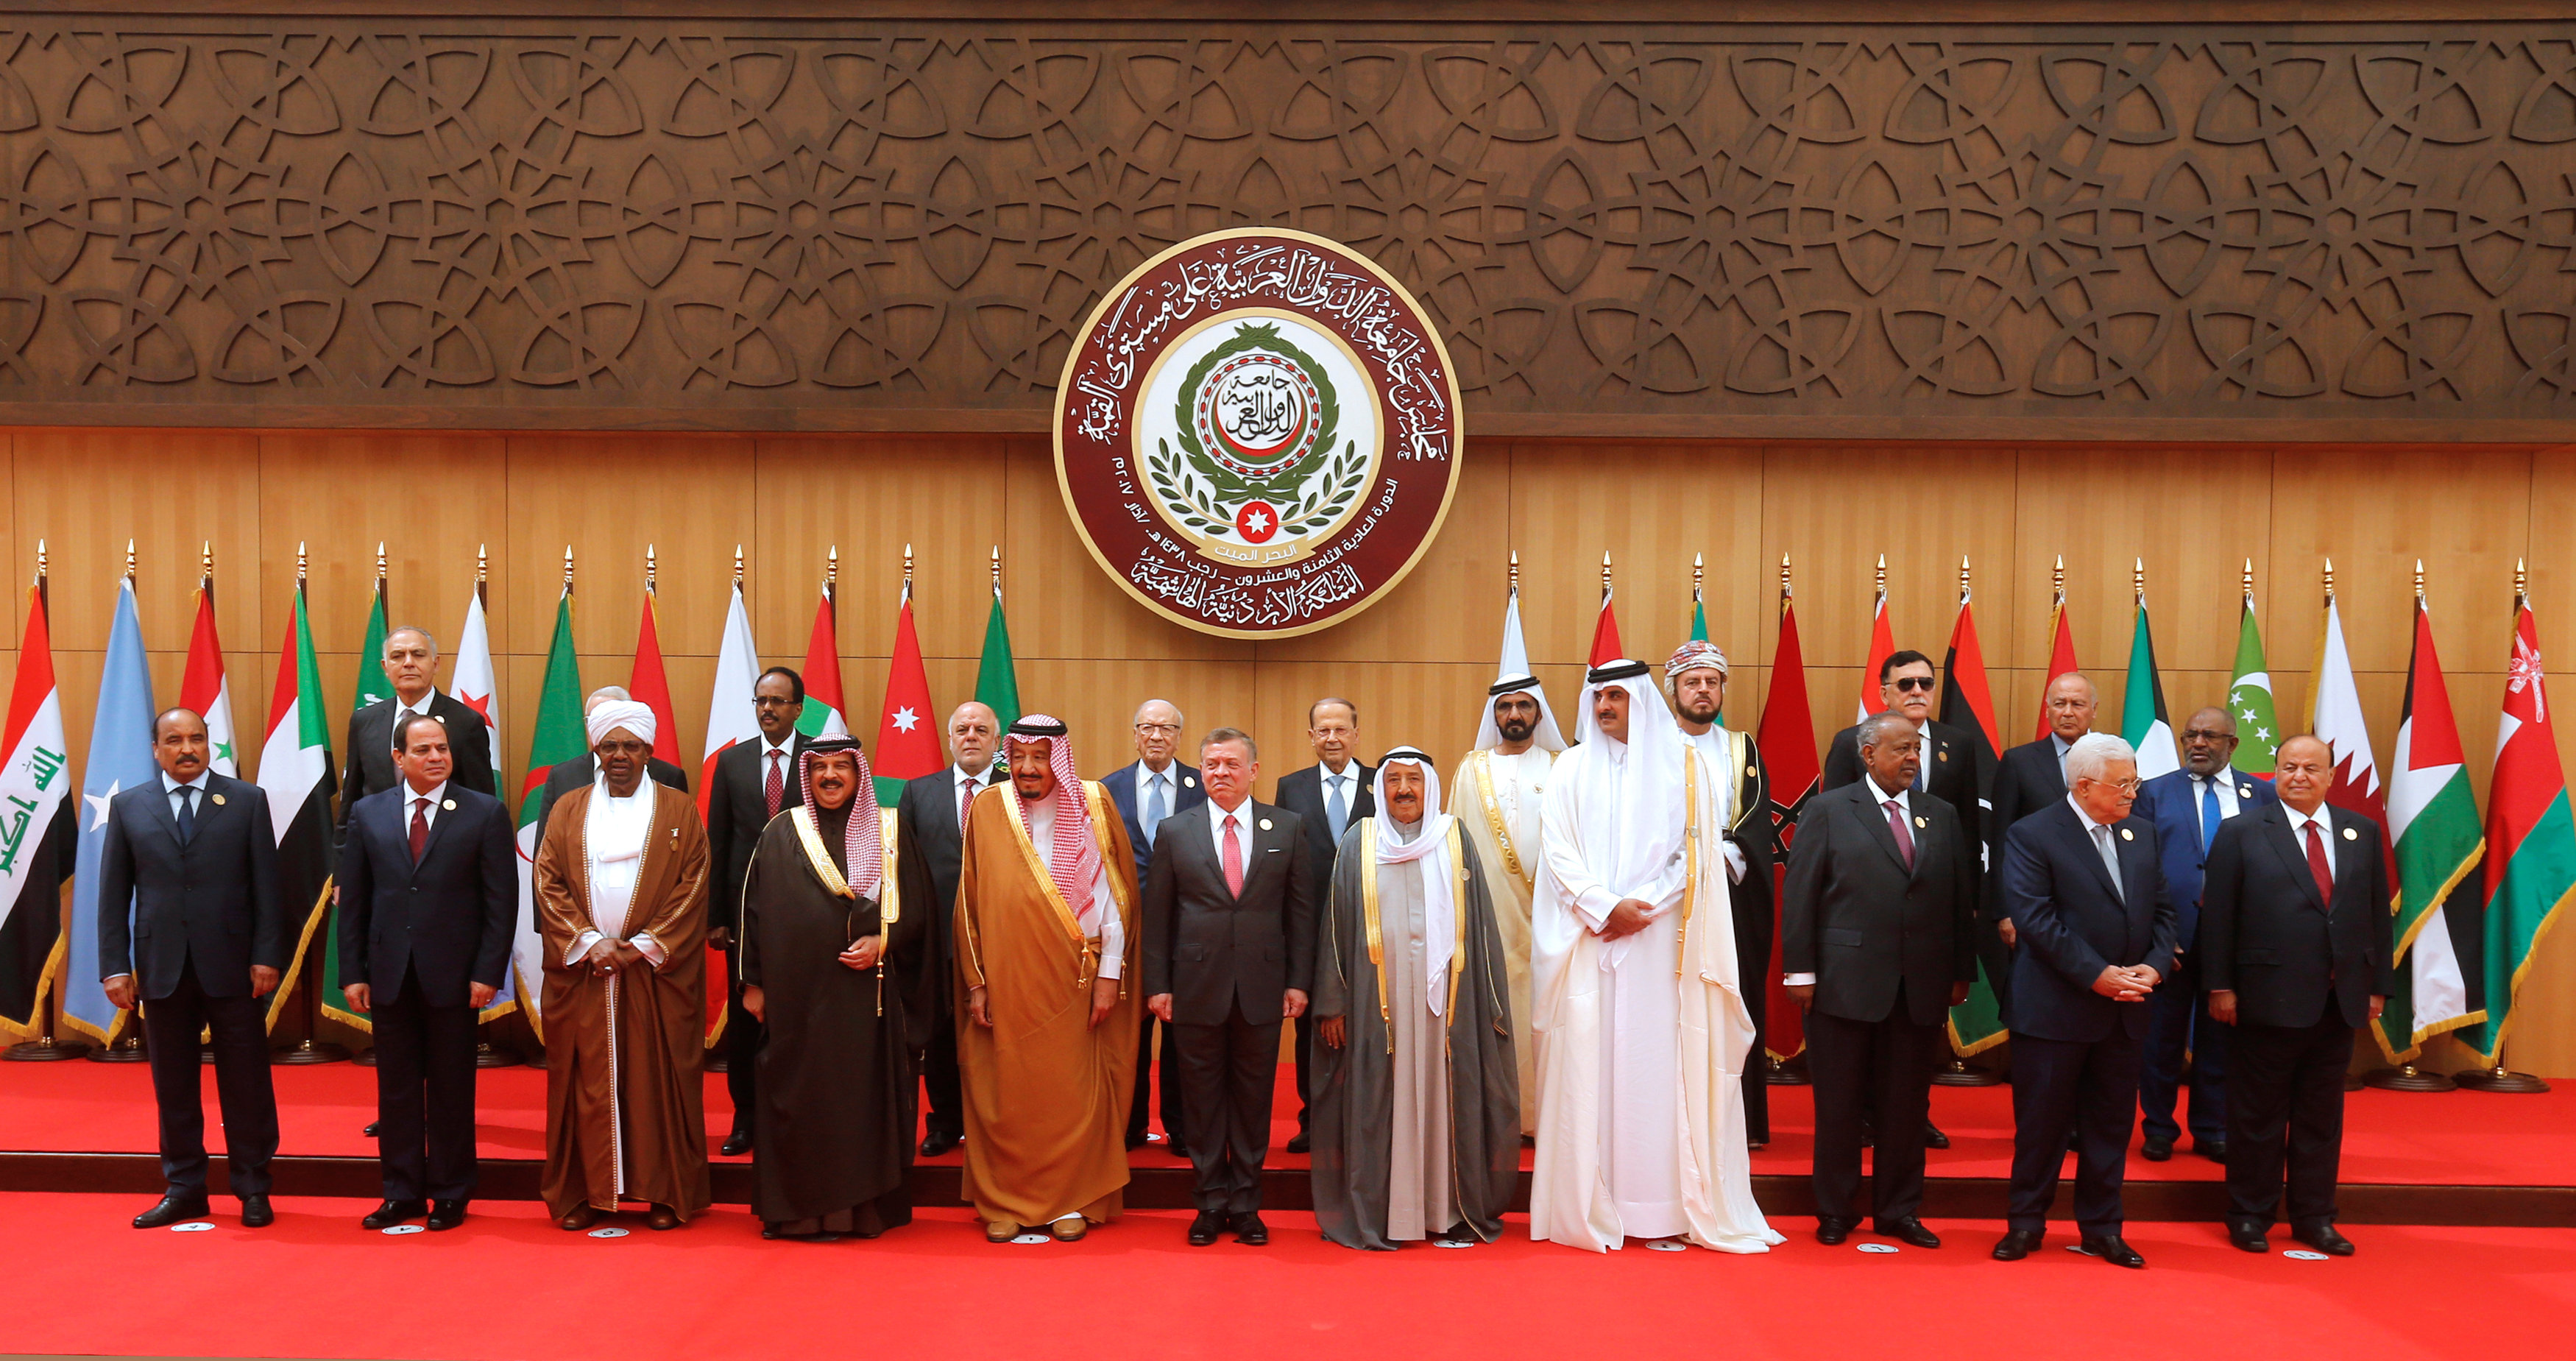 (front R-L) Yemen's President Abd-Rabbu Mansour Hadi, Palestinian President Mahmoud Abbas, Djibouti's President Ismail Omar Guelleh, Qatari Emir Sheikh Tamim bin Hamad al-Thani, Emir of Kuwait Sabah Al-Ahmad Al-Jaber Al-Sabah, Jordan's King Abdullah II, Saudi Arabia's King Salman bin Abdulaziz Al Saud, Bahrain's King Hamad bin Isa Al Khalifa, Sudan's President Omar Al Bashir, Egypt's President Abdel Fattah al-Sisi, and Mauritania's President Mohamed Ould Abdel Aziz pose for a group photograph during the 28th Ordinary Summit of the Arab League at the Dead Sea, Jordan March 29, 2017. REUTERS/Mohammad Hamed